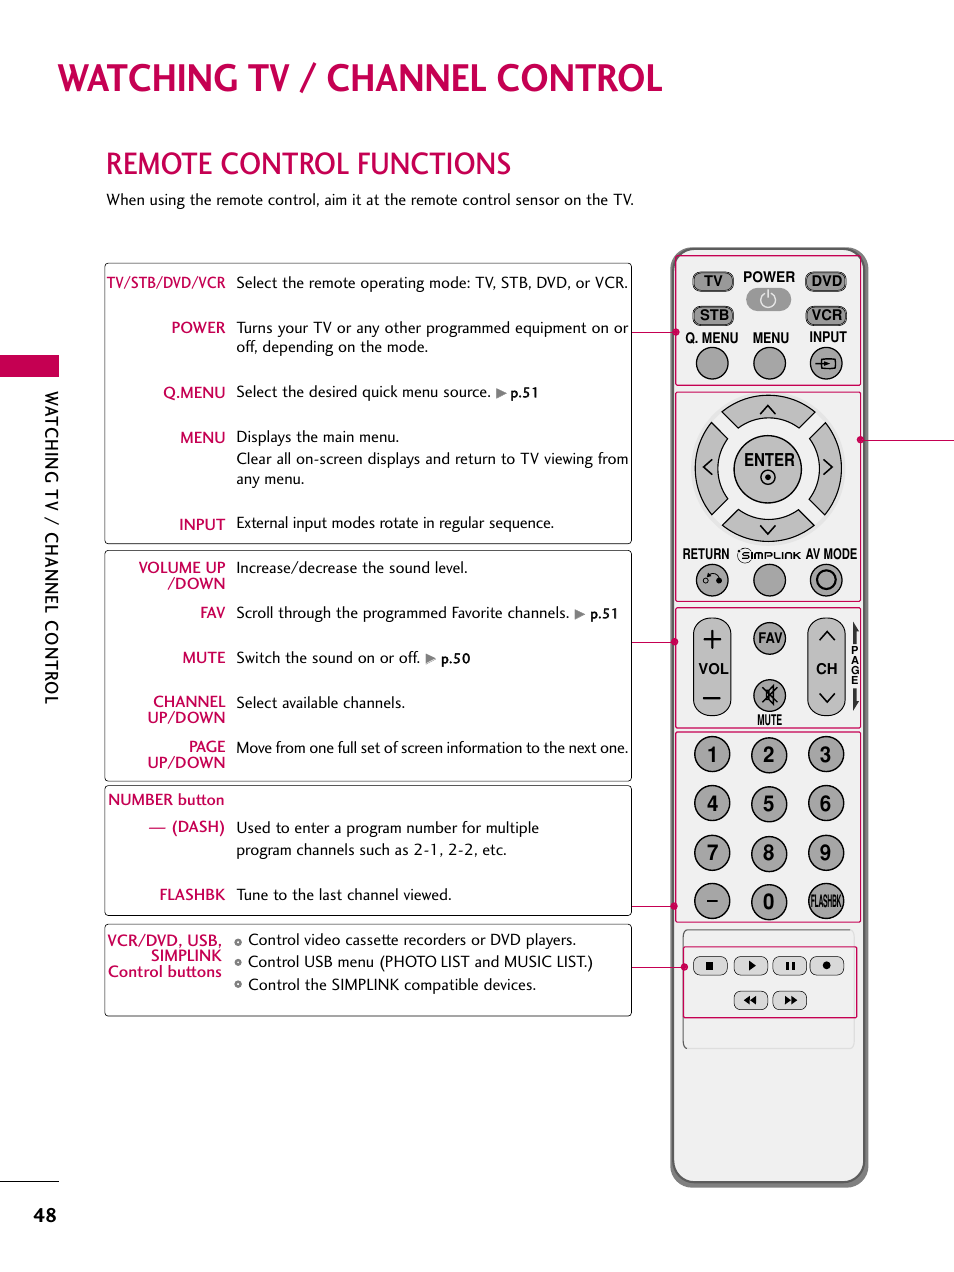 Watching tv / channel control, Remote control functions | LG